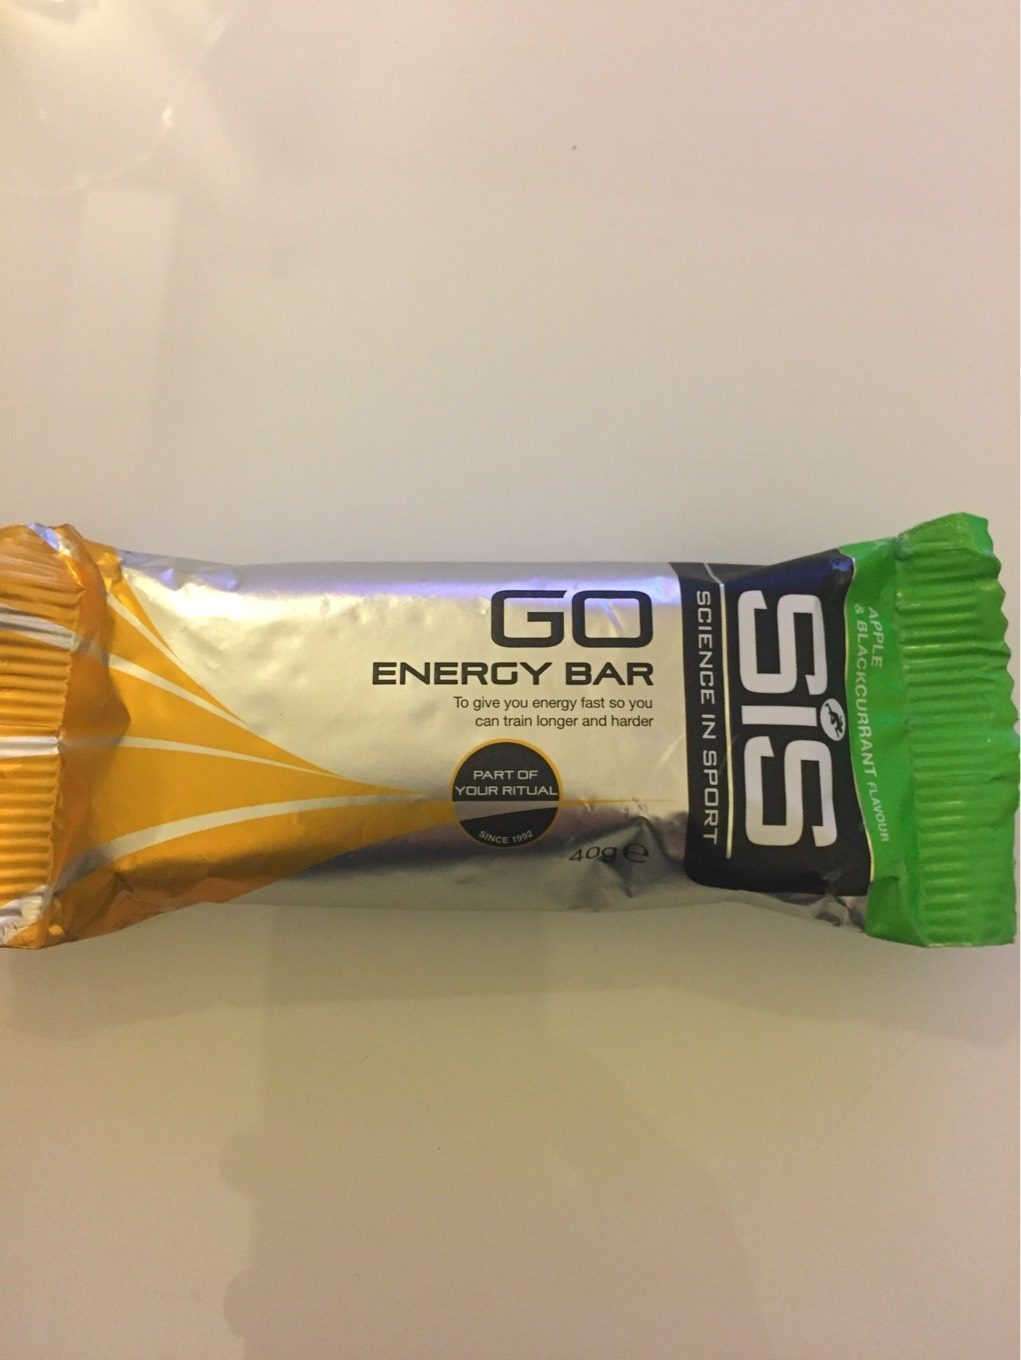 Barre Energetique Sis Go Energy 40GR - Product